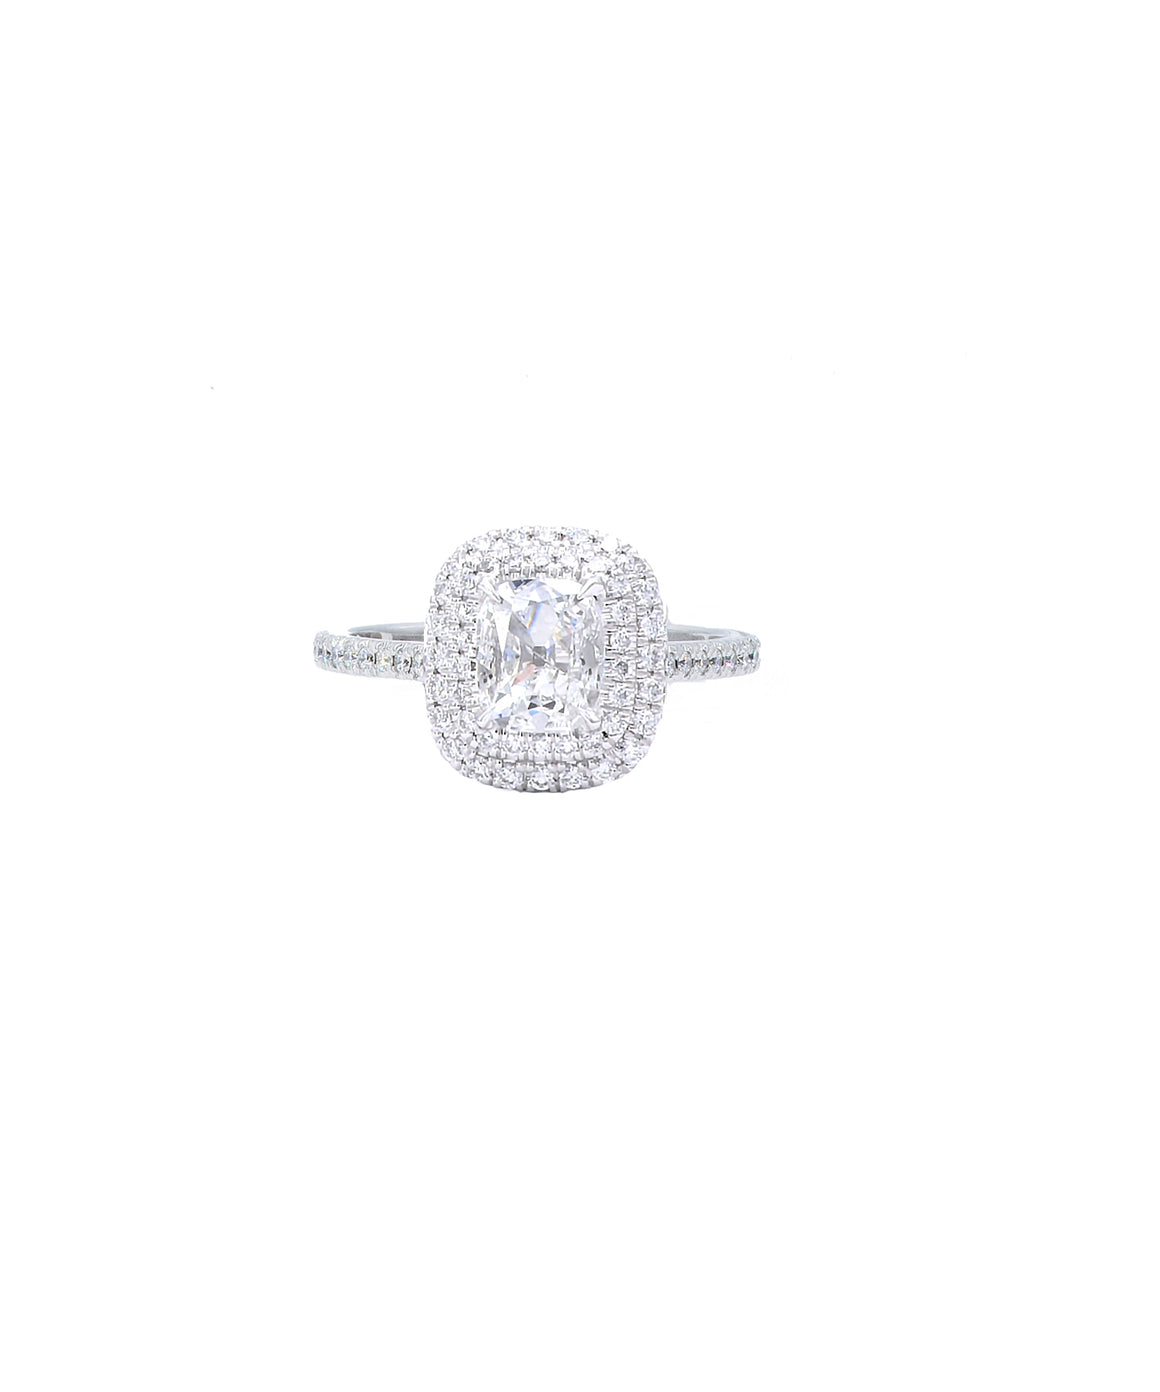 Cushion Cut Diamond in Double-Halo Setting - Lesley Ann Jewels